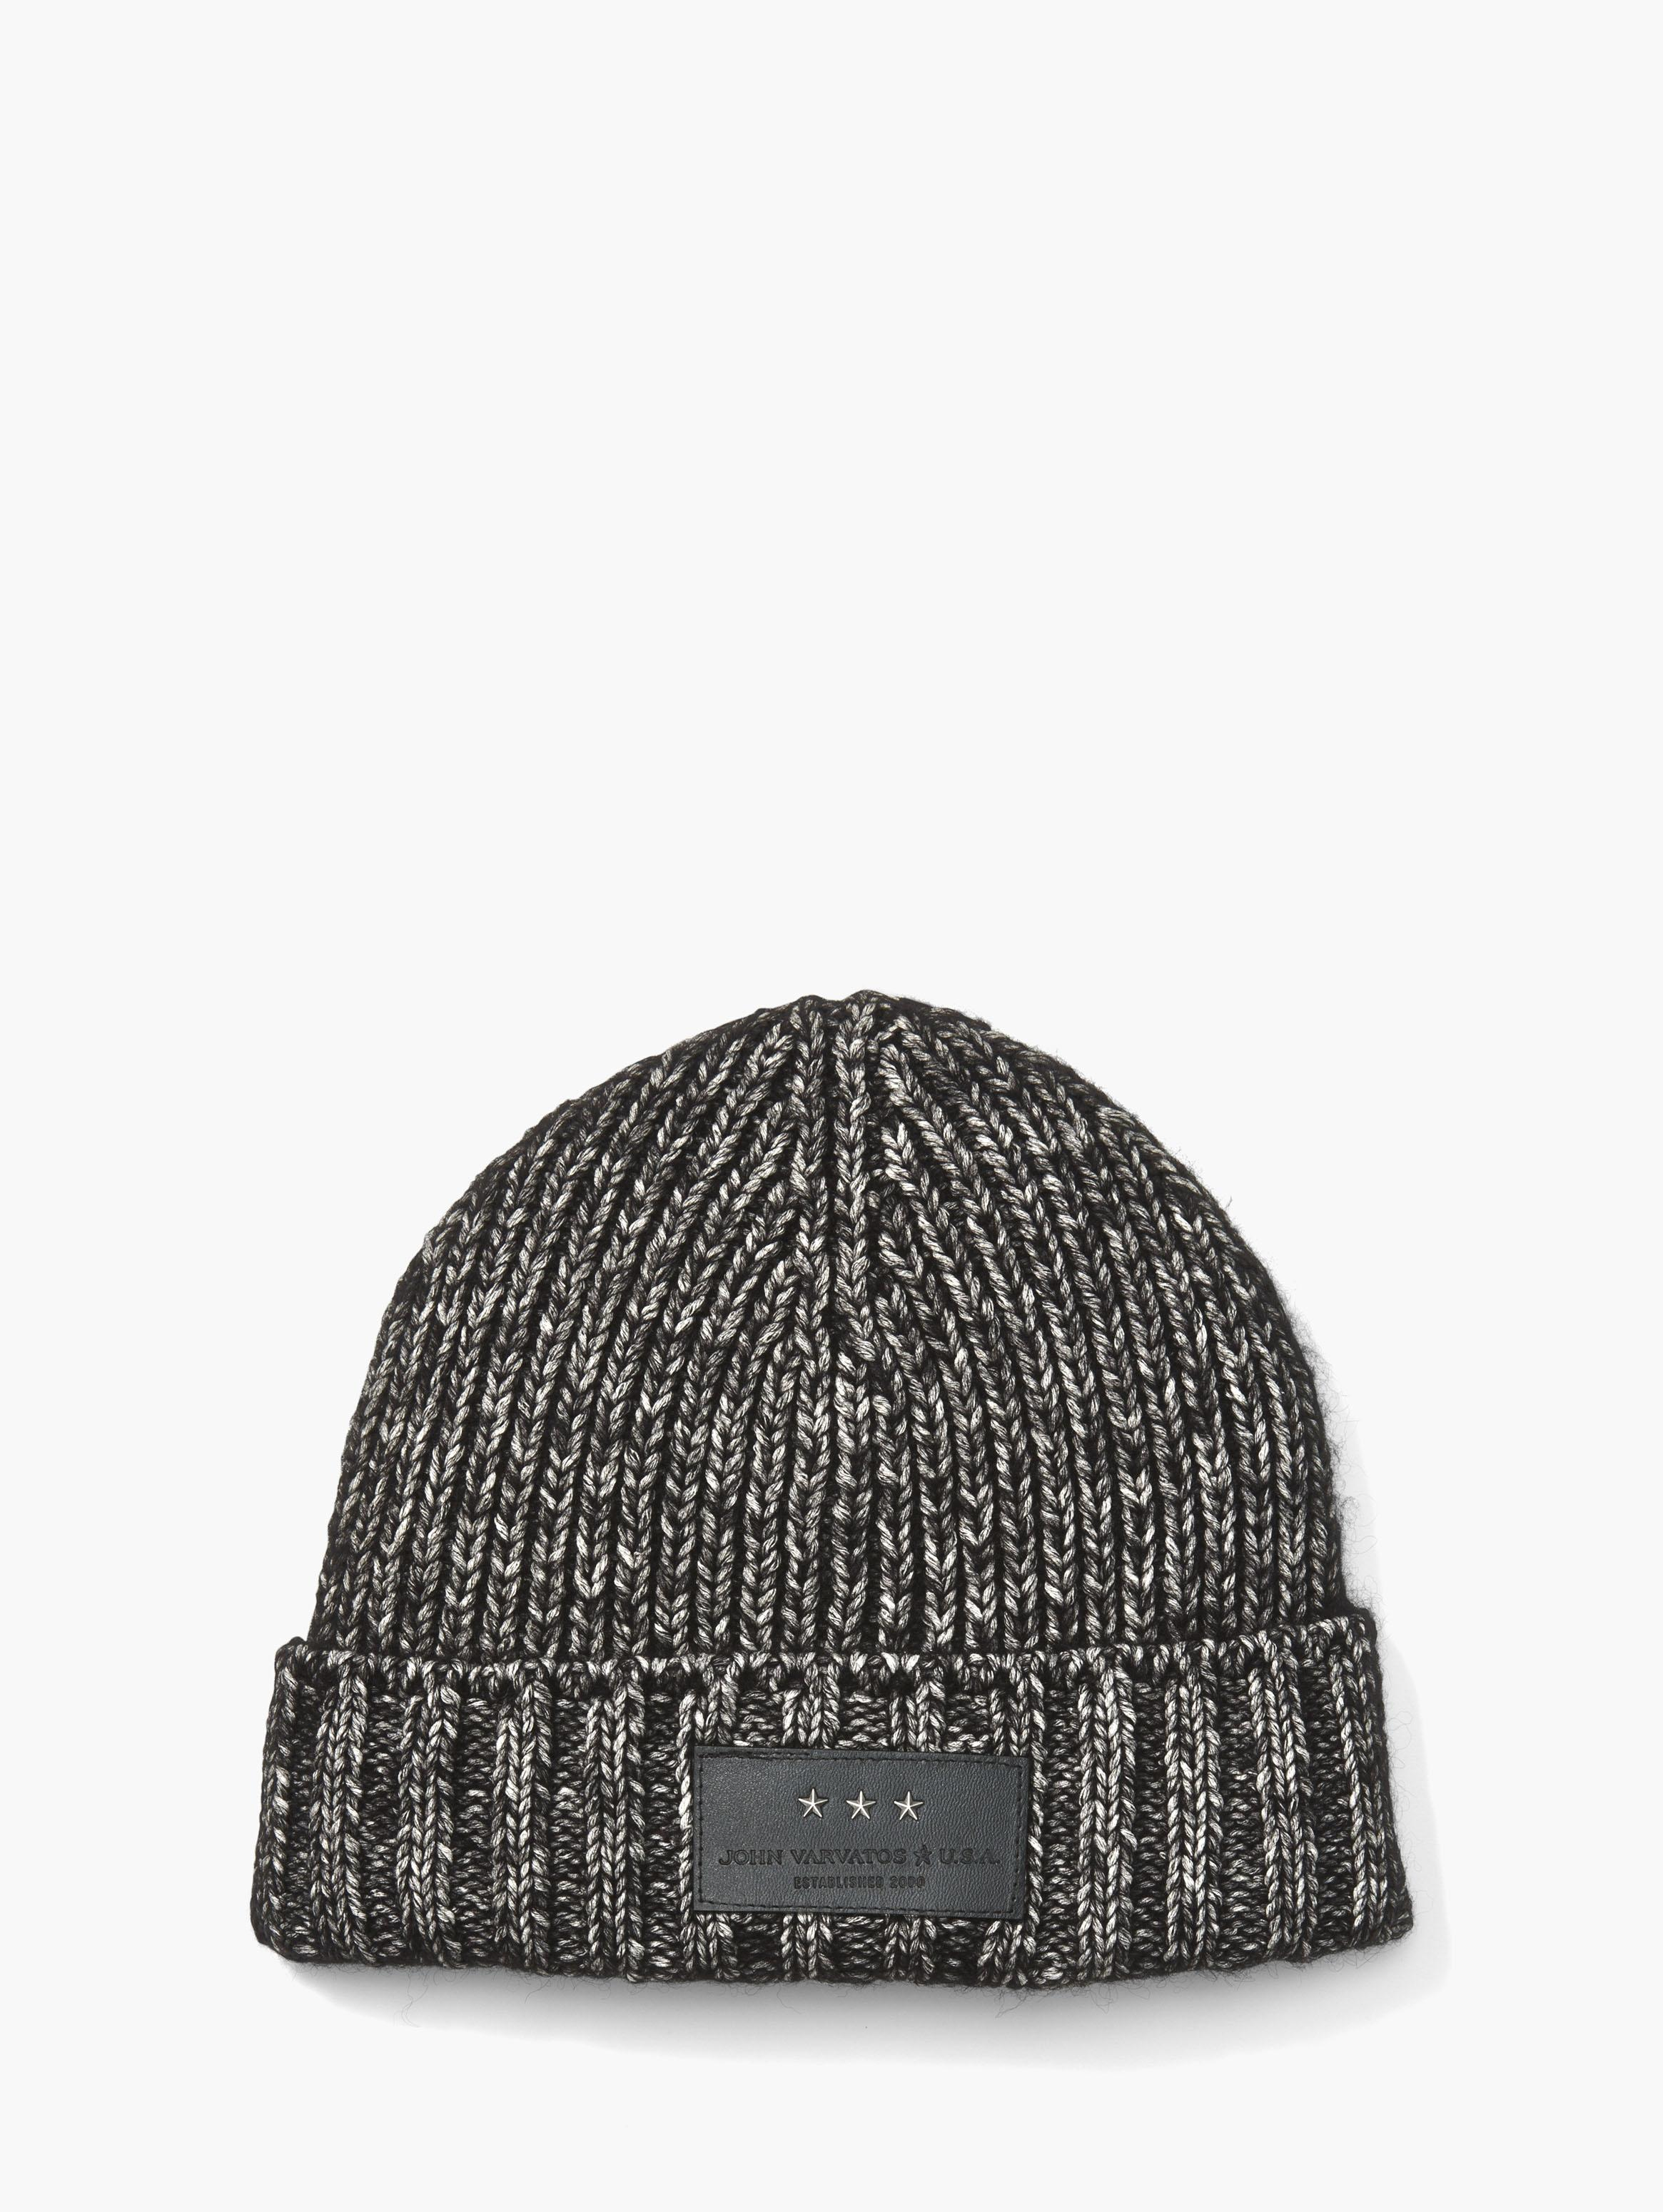 Cotton Wool Knit Hat